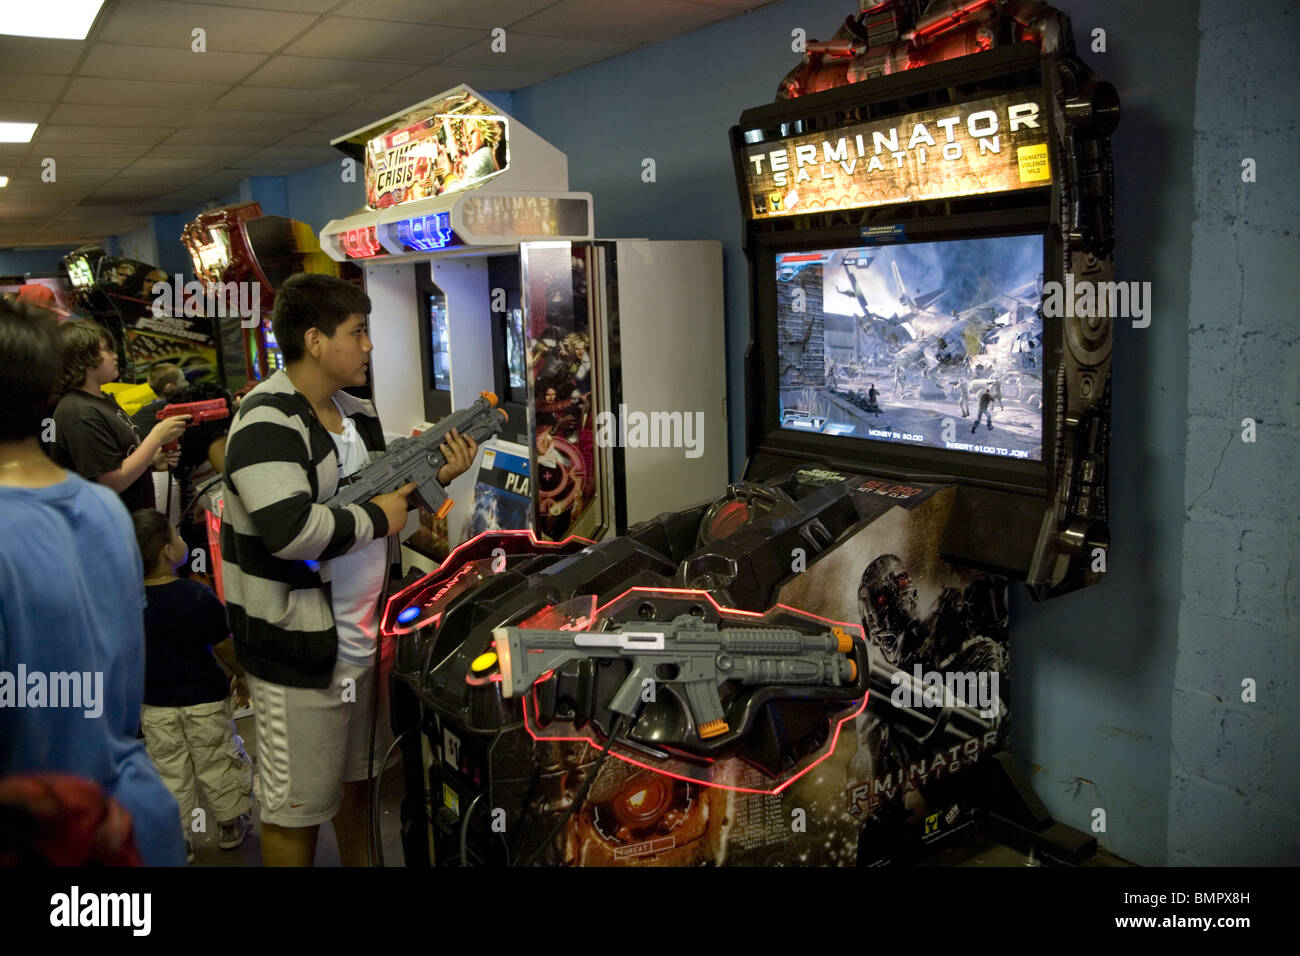 Video game arcade, Coney Island, Brooklyn, New York. - Stock Image